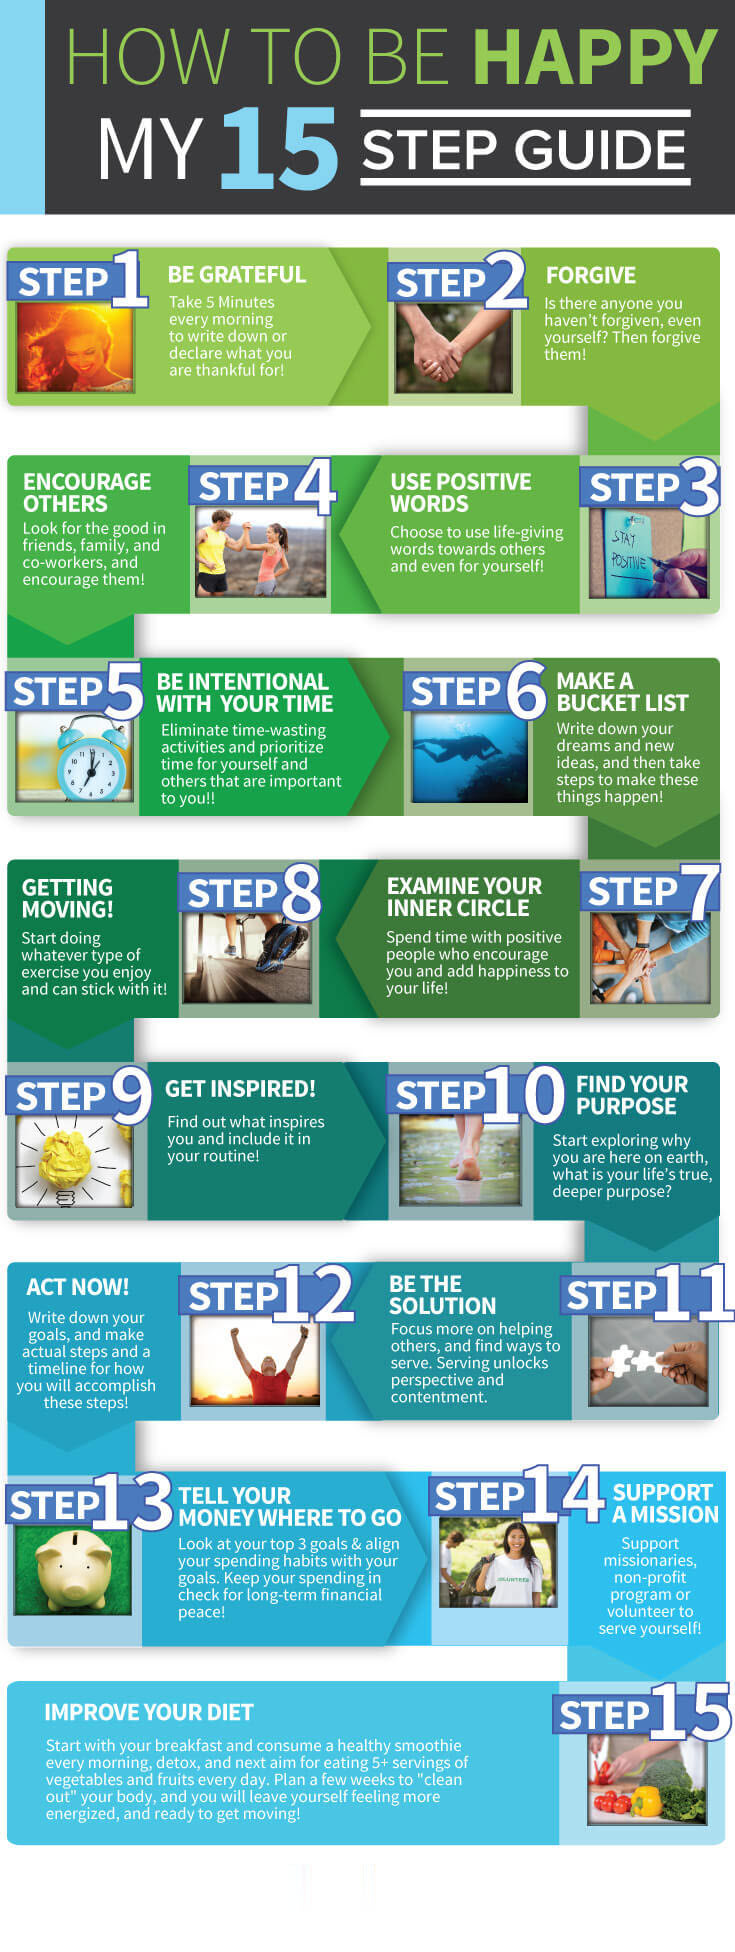 how-to-be-happy-15-life-changing-steps - MKexpress.net